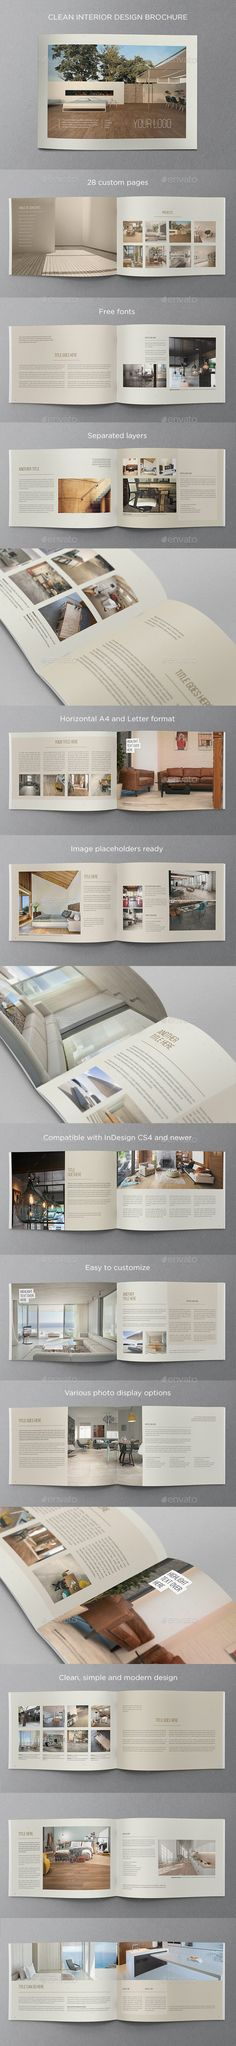 Portfolio Brochure Template Brochure template, Brochures and - interior design brochure template